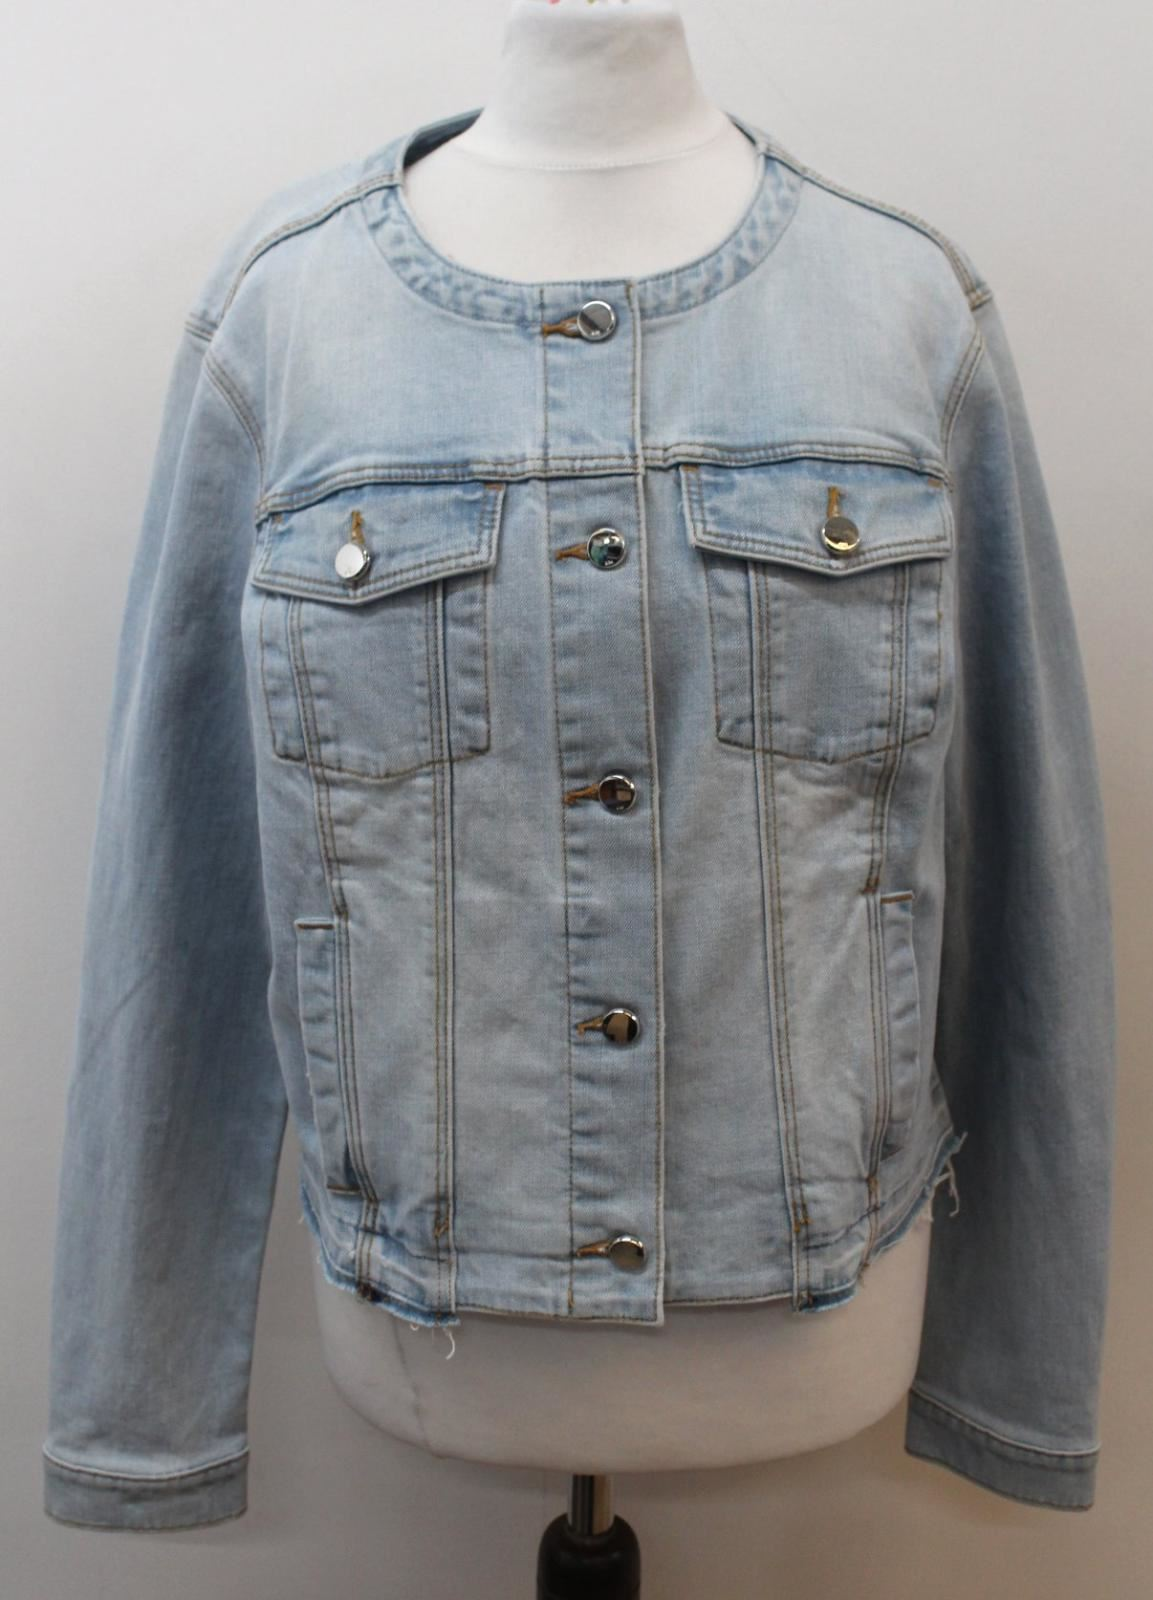 Uk14 chiaro in donna denim colletto Karen Eu42 Giacca blu con Millen 4w6TTgq